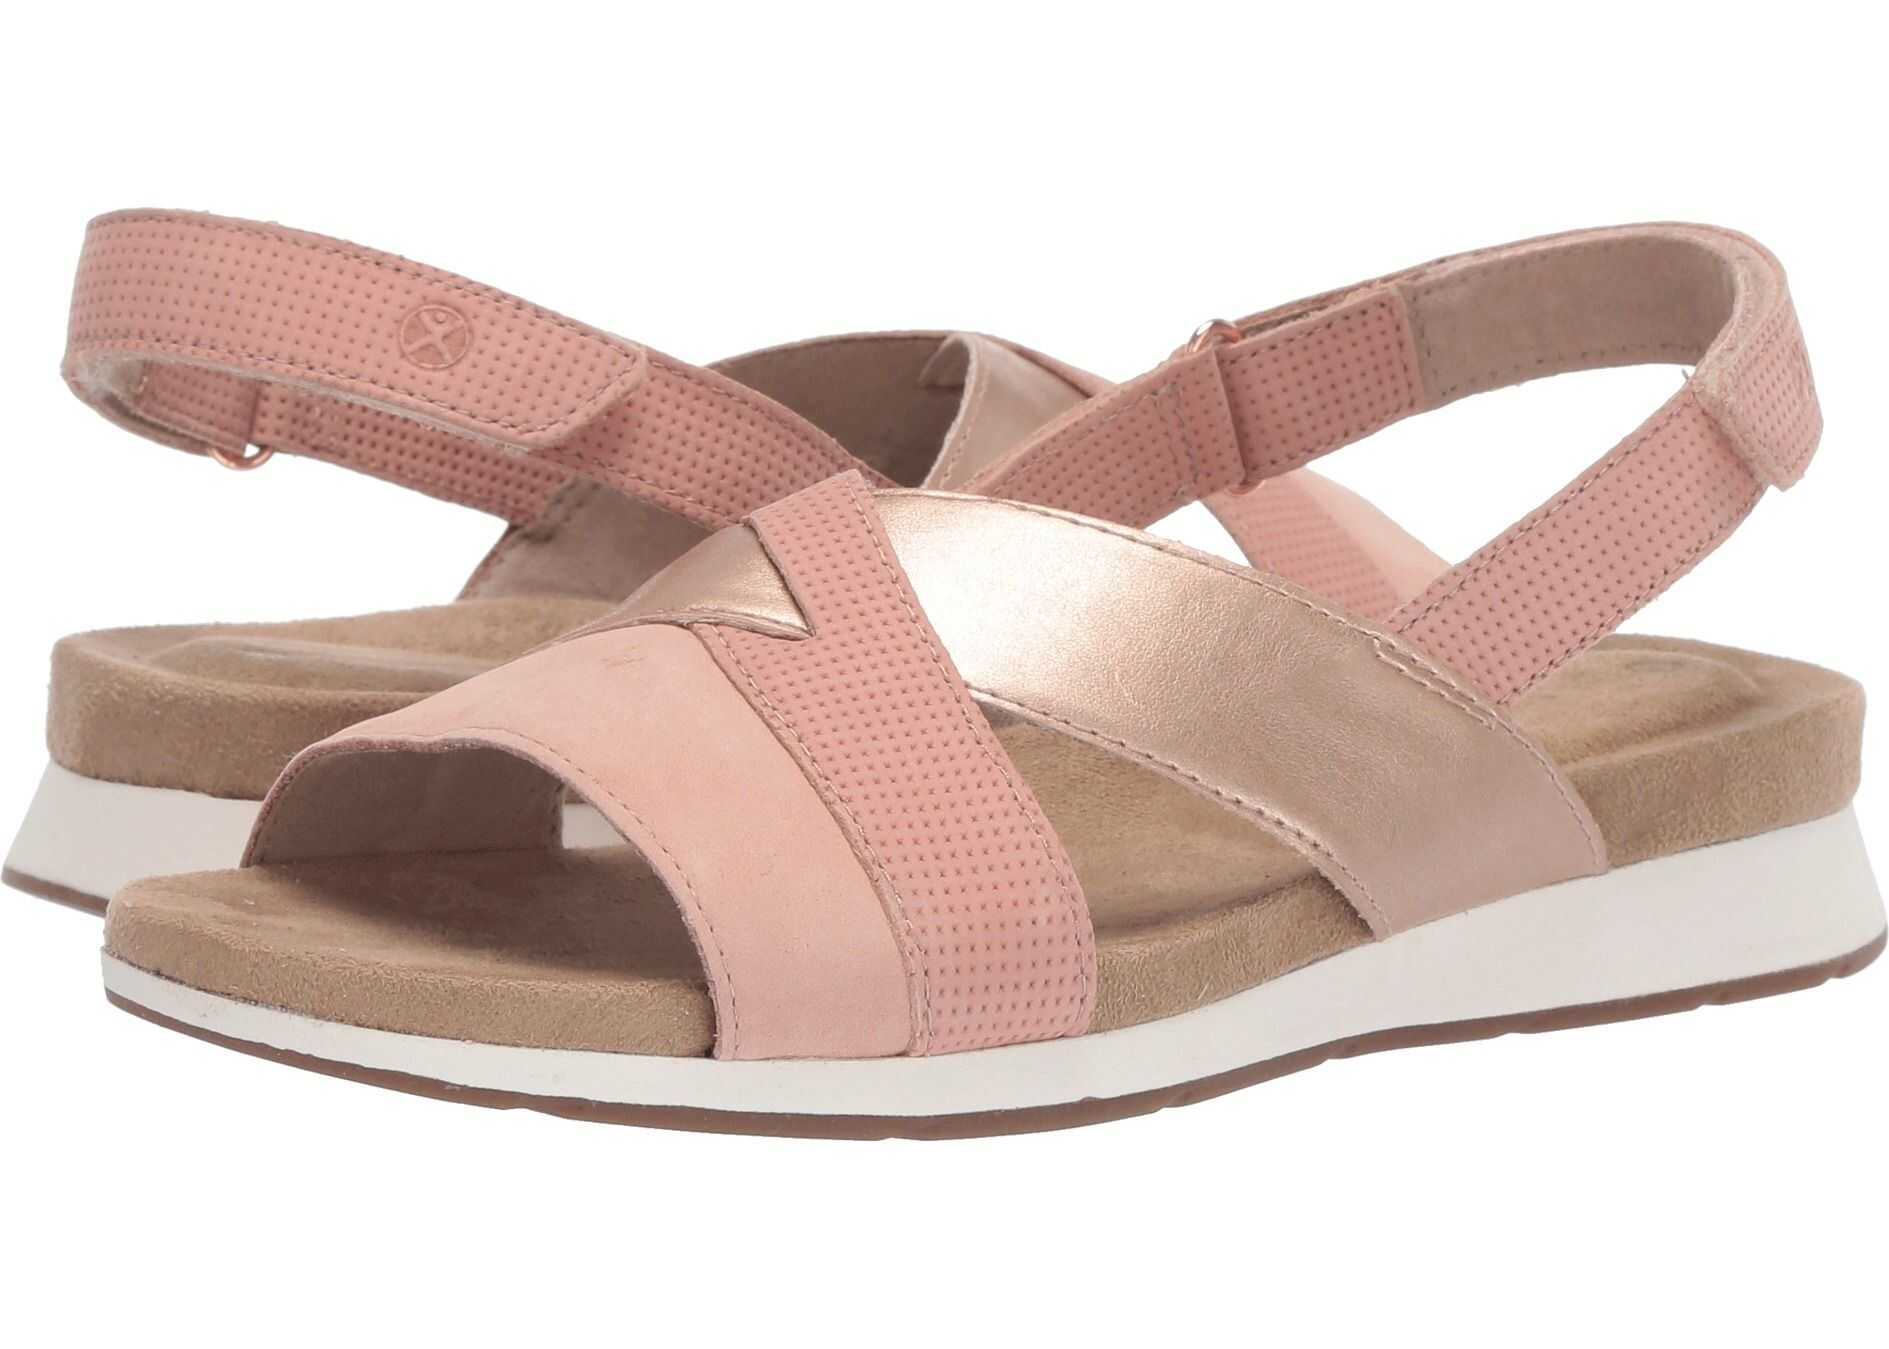 Hush Puppies Pepper Slingback Pale Peach Nubuck